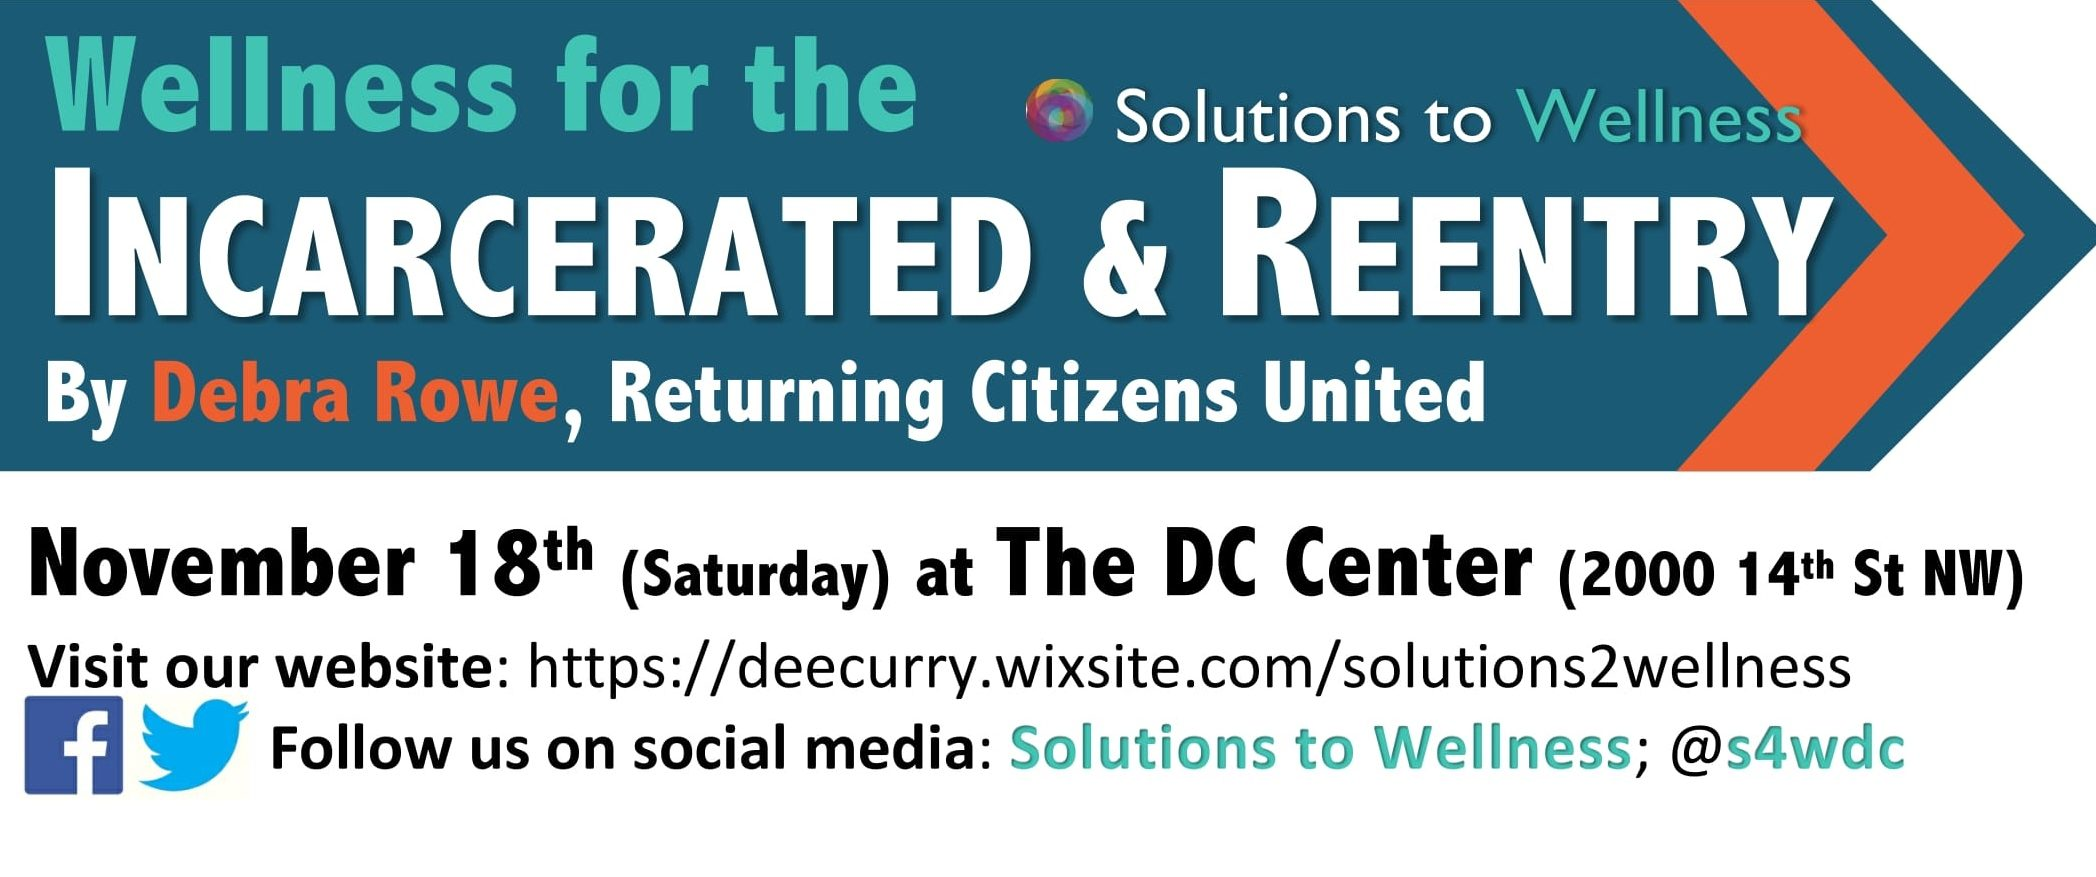 Wellness for the Incarcerated & Reentry [Solutions to Wellness 2017]